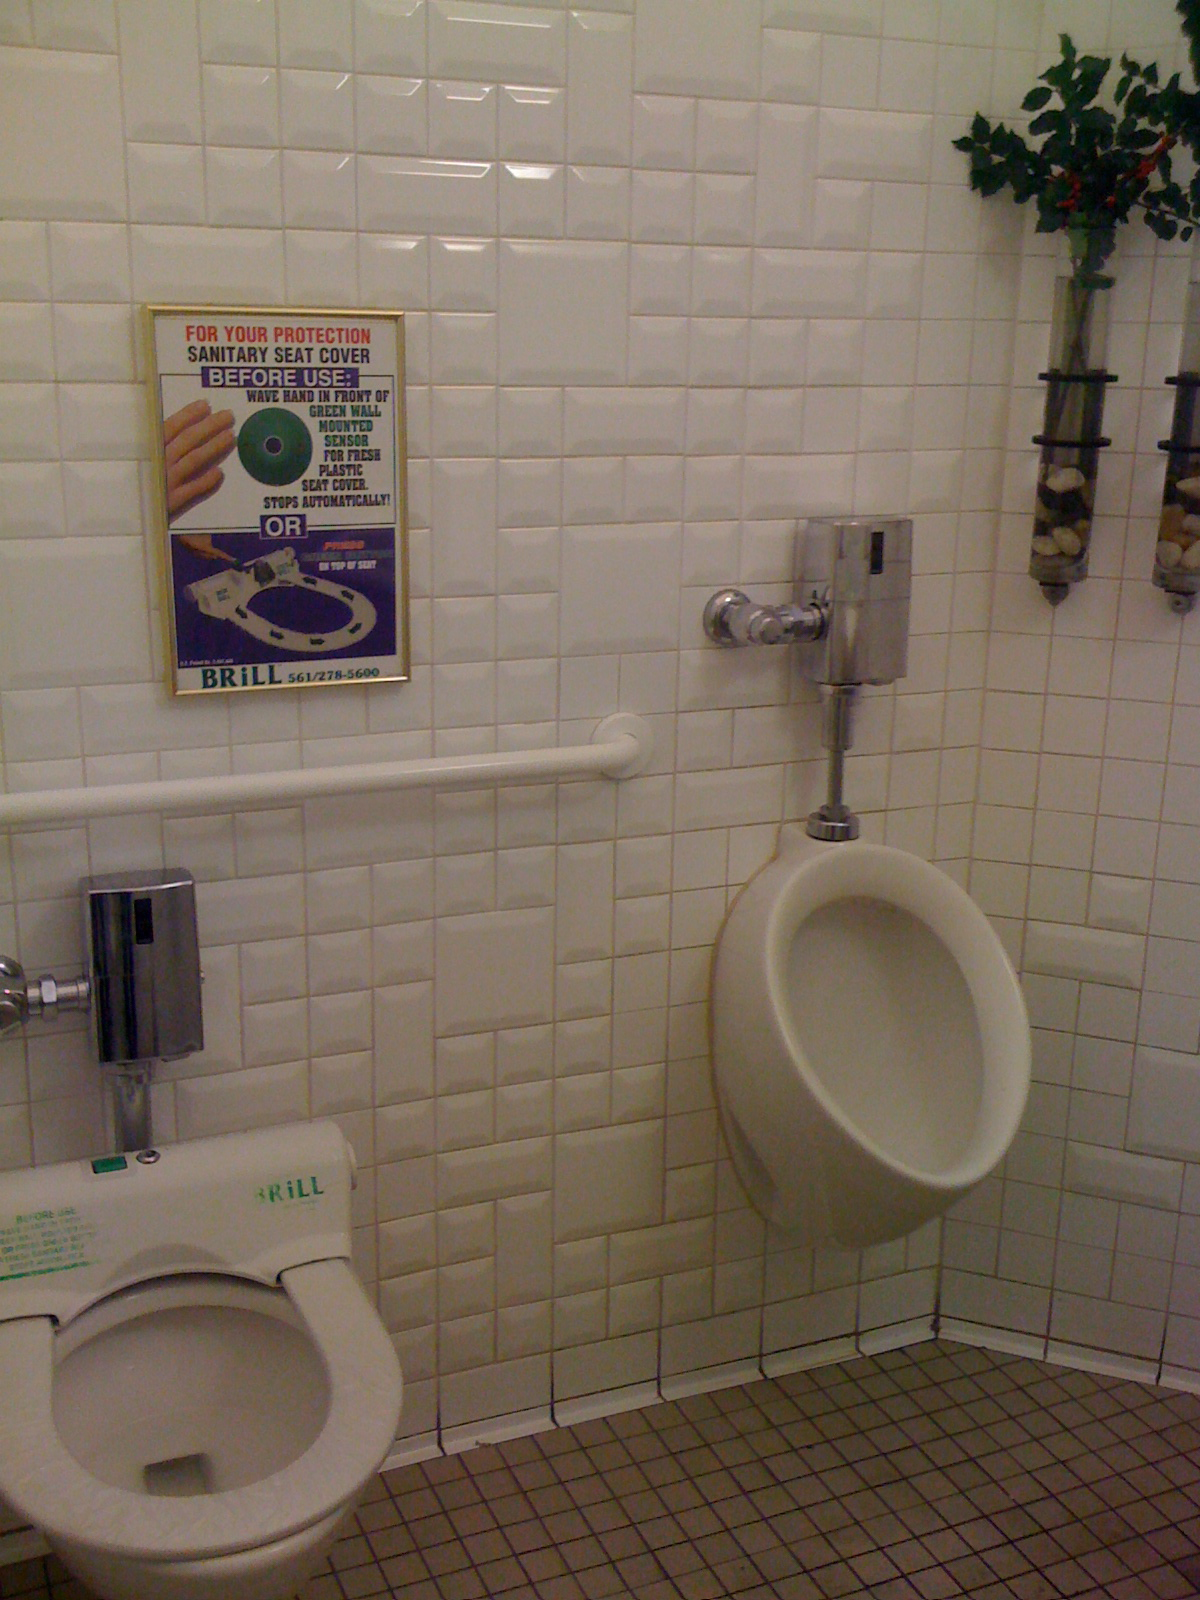 Cool Bathrooms Nyc in search of clean toilets-new york city's top public bathrooms